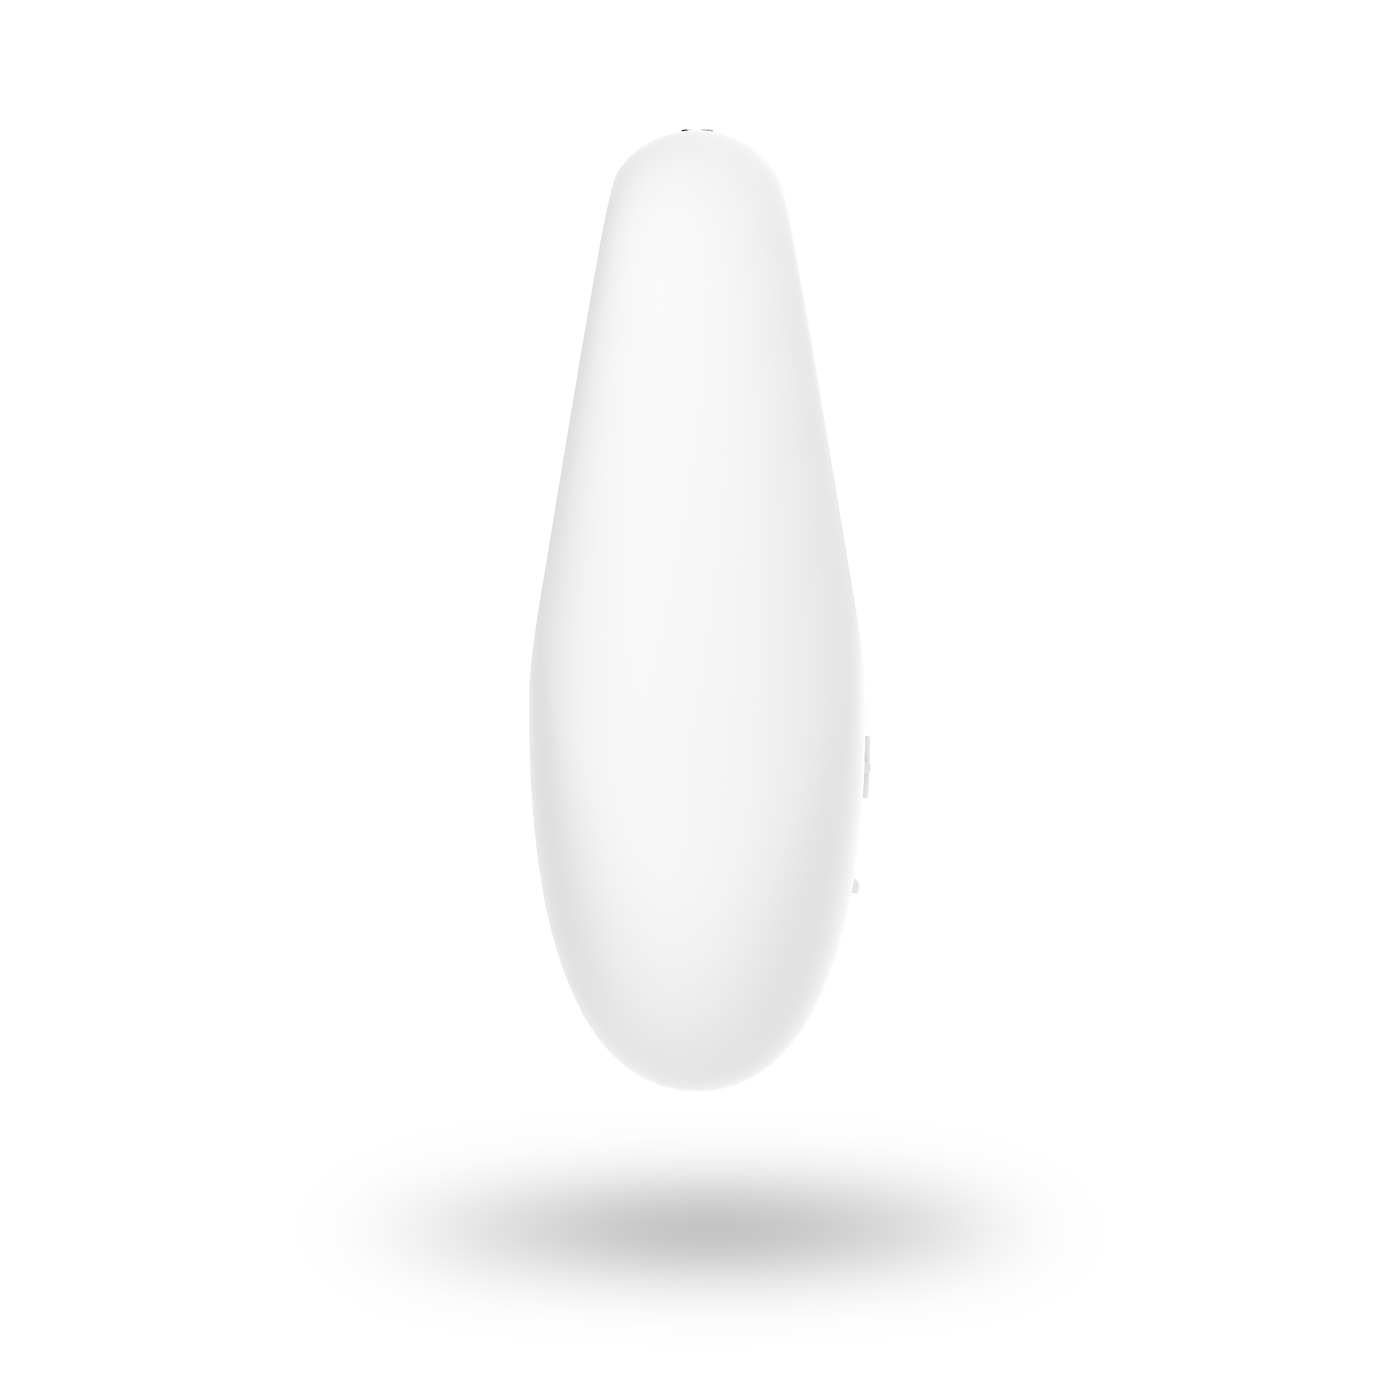 Satisfyer Layons White Temptation Bullet Vibrator Clitoris Stimulator USB Rechargeable